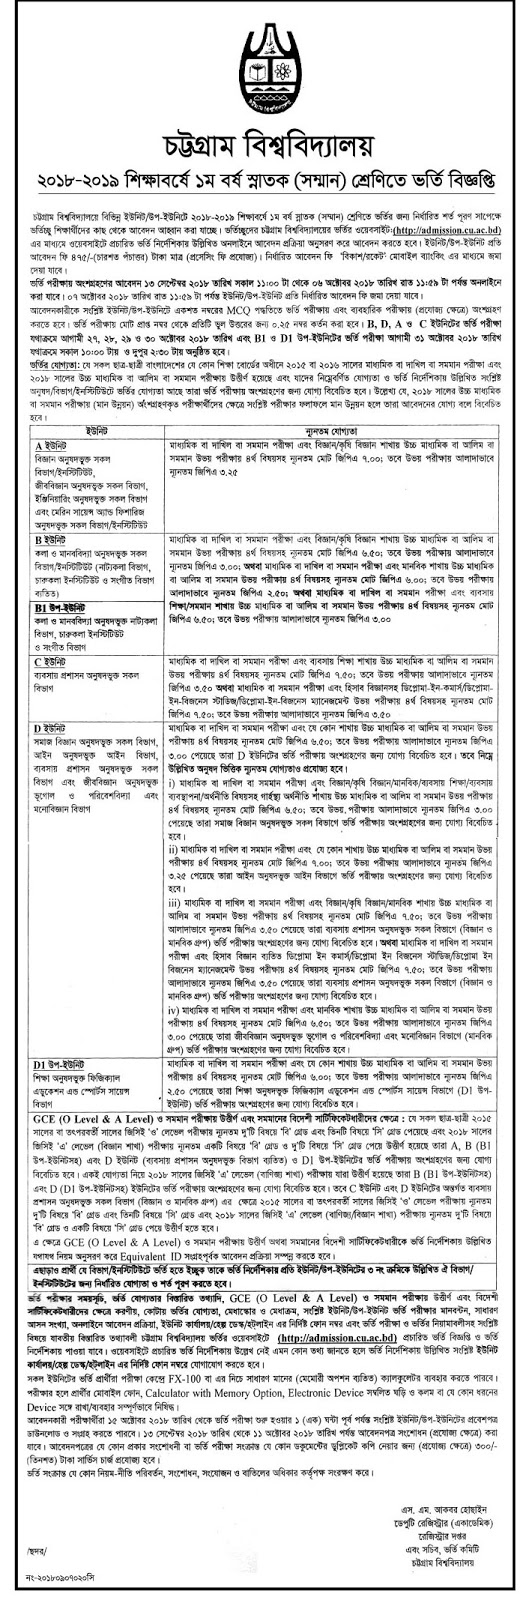 University of Chittagong Admission Test Circular 2018-2019